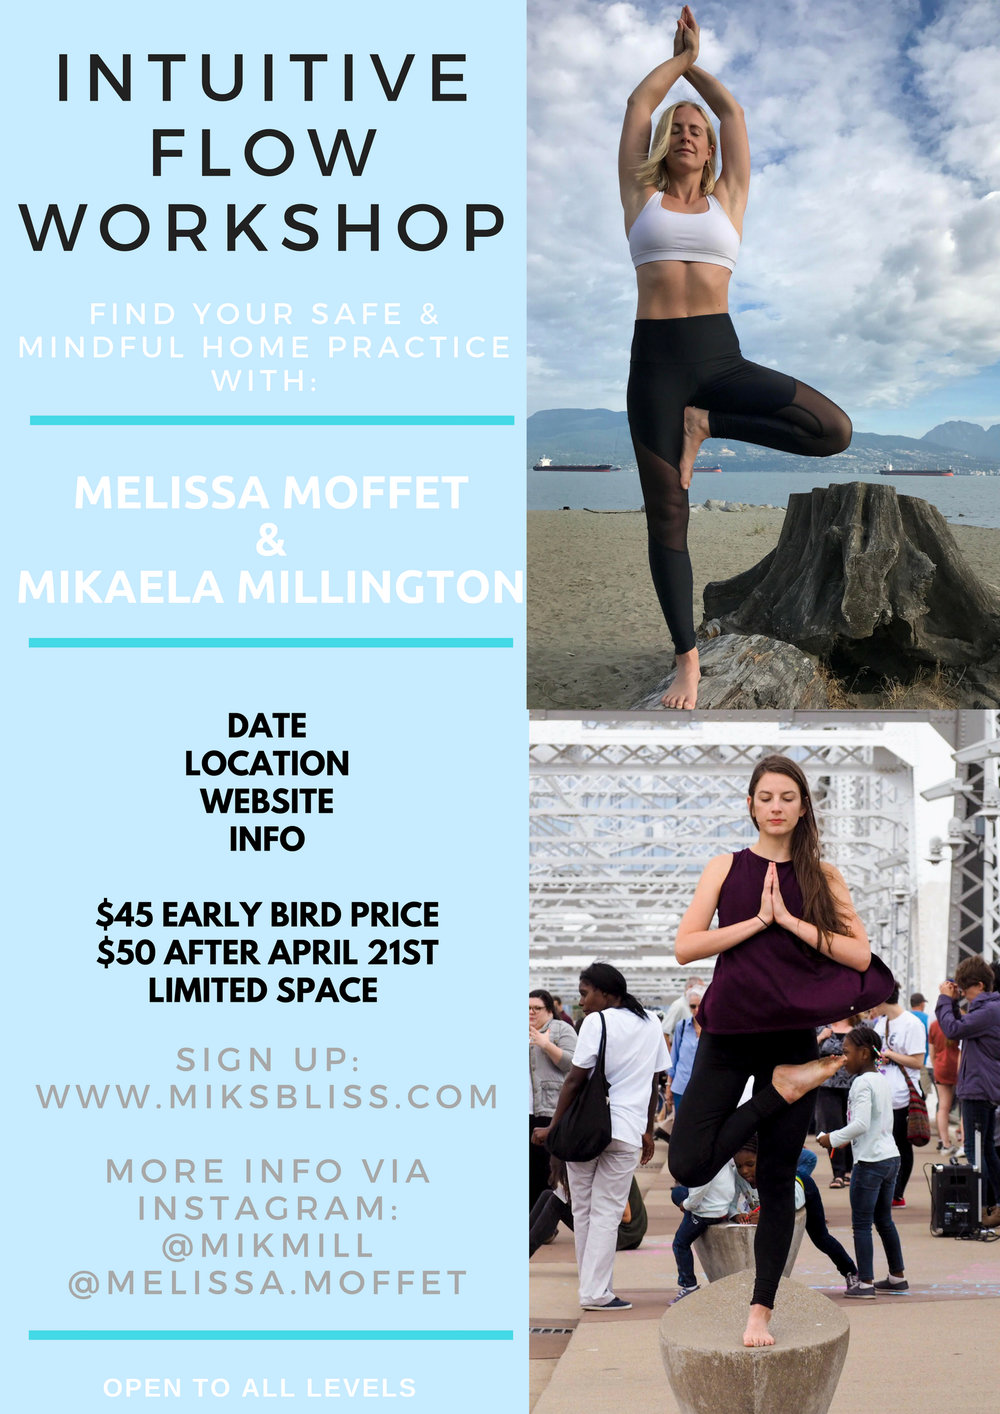 offering   2 hour workshop  want to learn more about your body and how to start a safe home practice? this workshop focusses on the FUNDAMENTALS of a flow, safe sequencing, creative and intuitive movement, self love and trust. includes guided meditation.